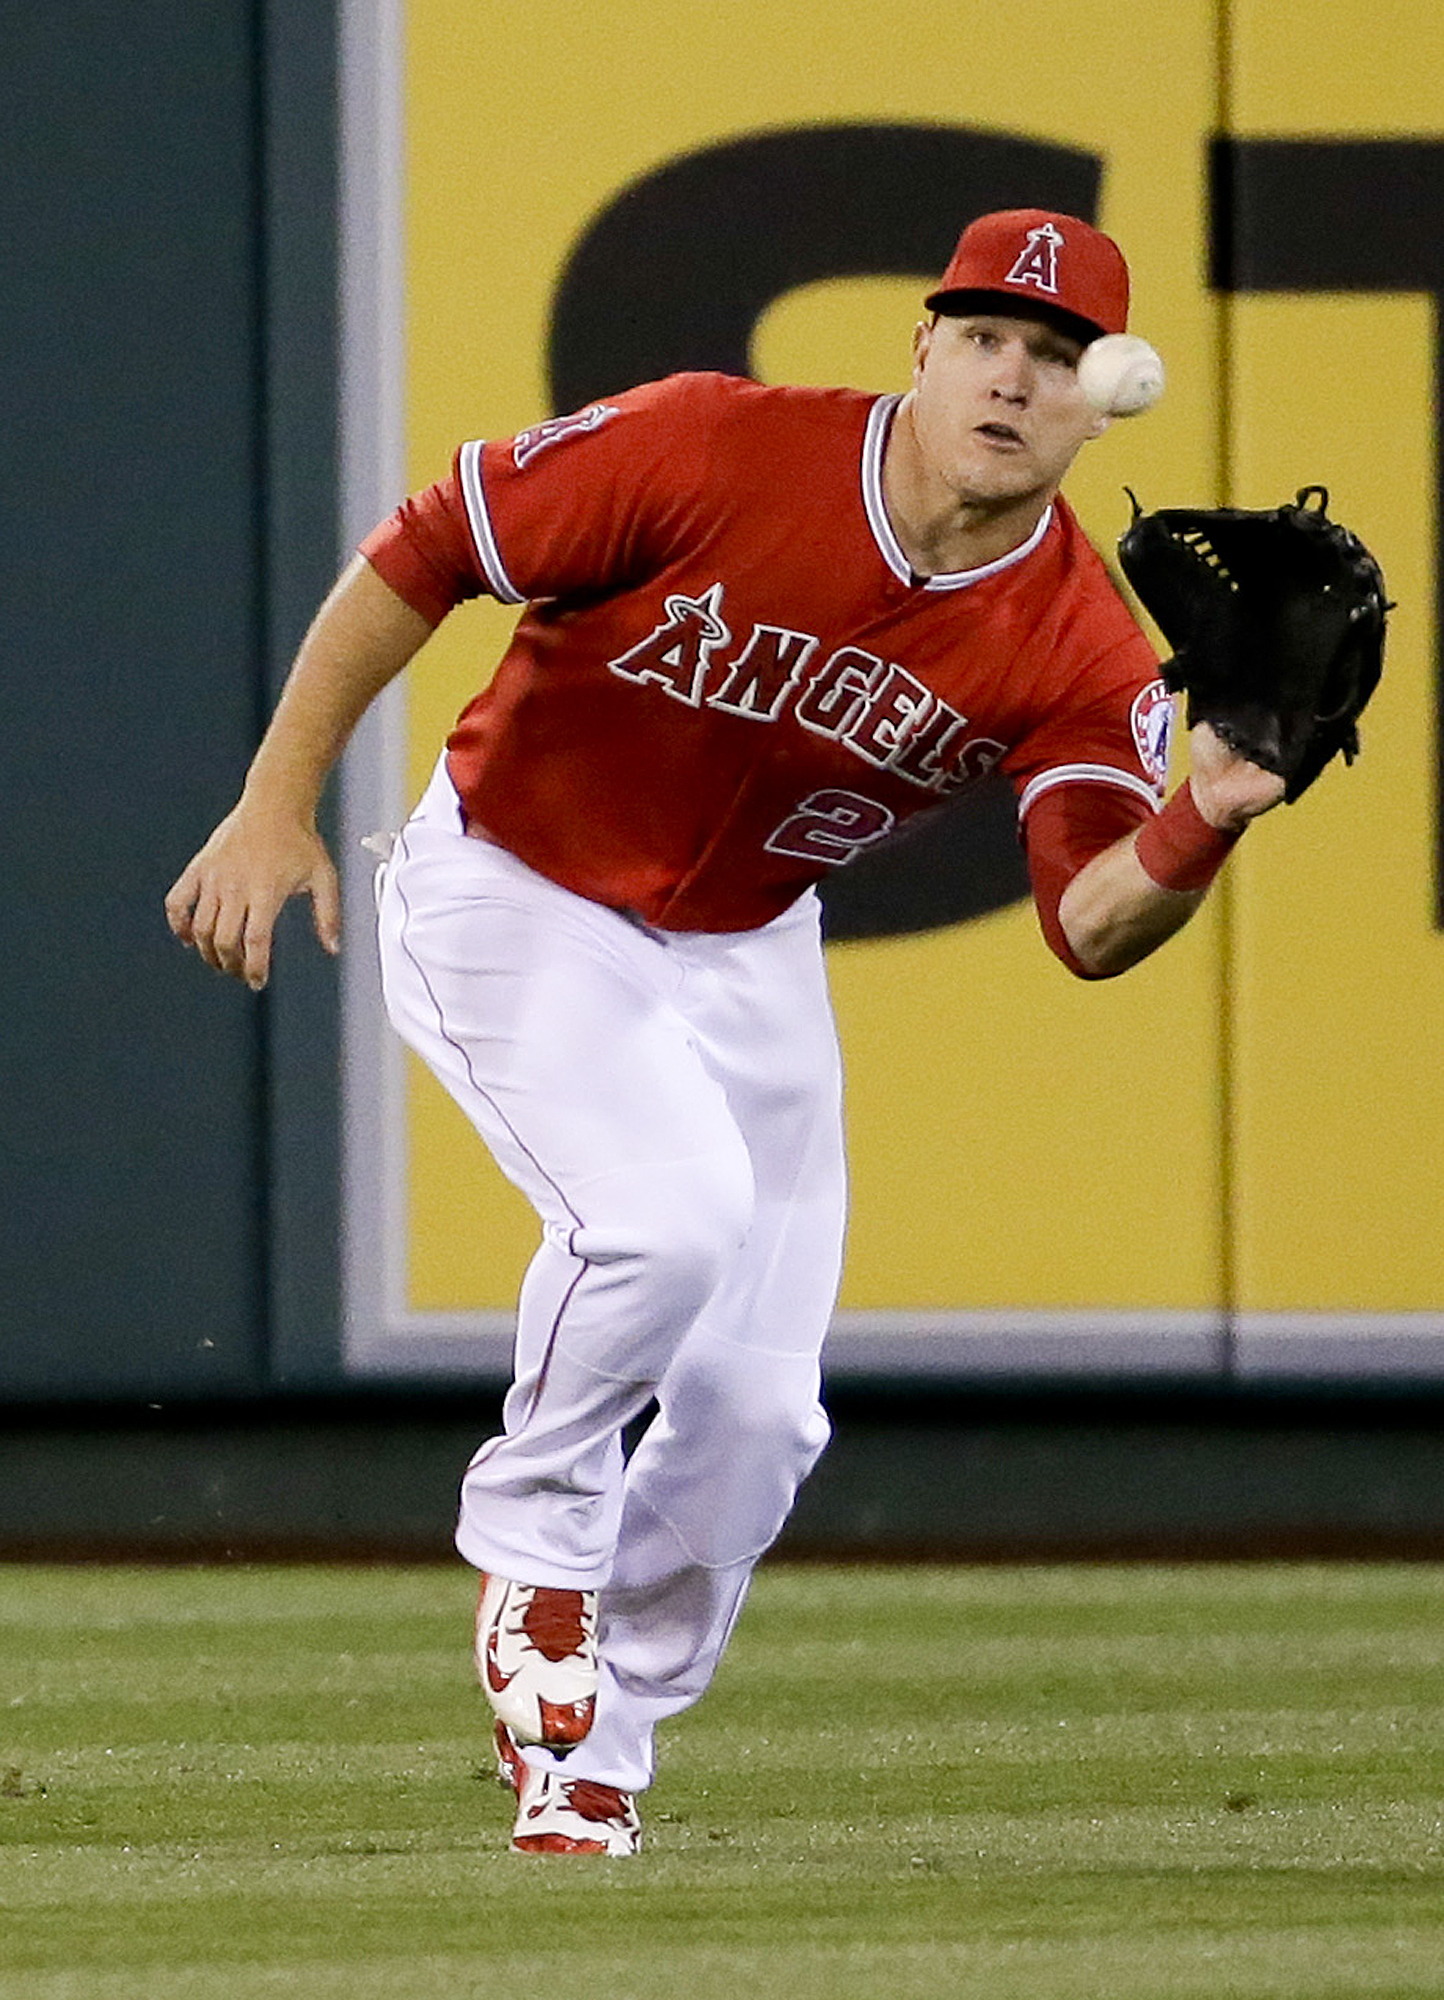 Los Angeles Angels center fielder Mike Trout catches a fly ball hit by San Diego Padres' Alexi Amarista during the fifth inning of a baseball game in Anaheim, Calif., Tuesday, May 26, 2015. (AP Photo/Chris Carlson)